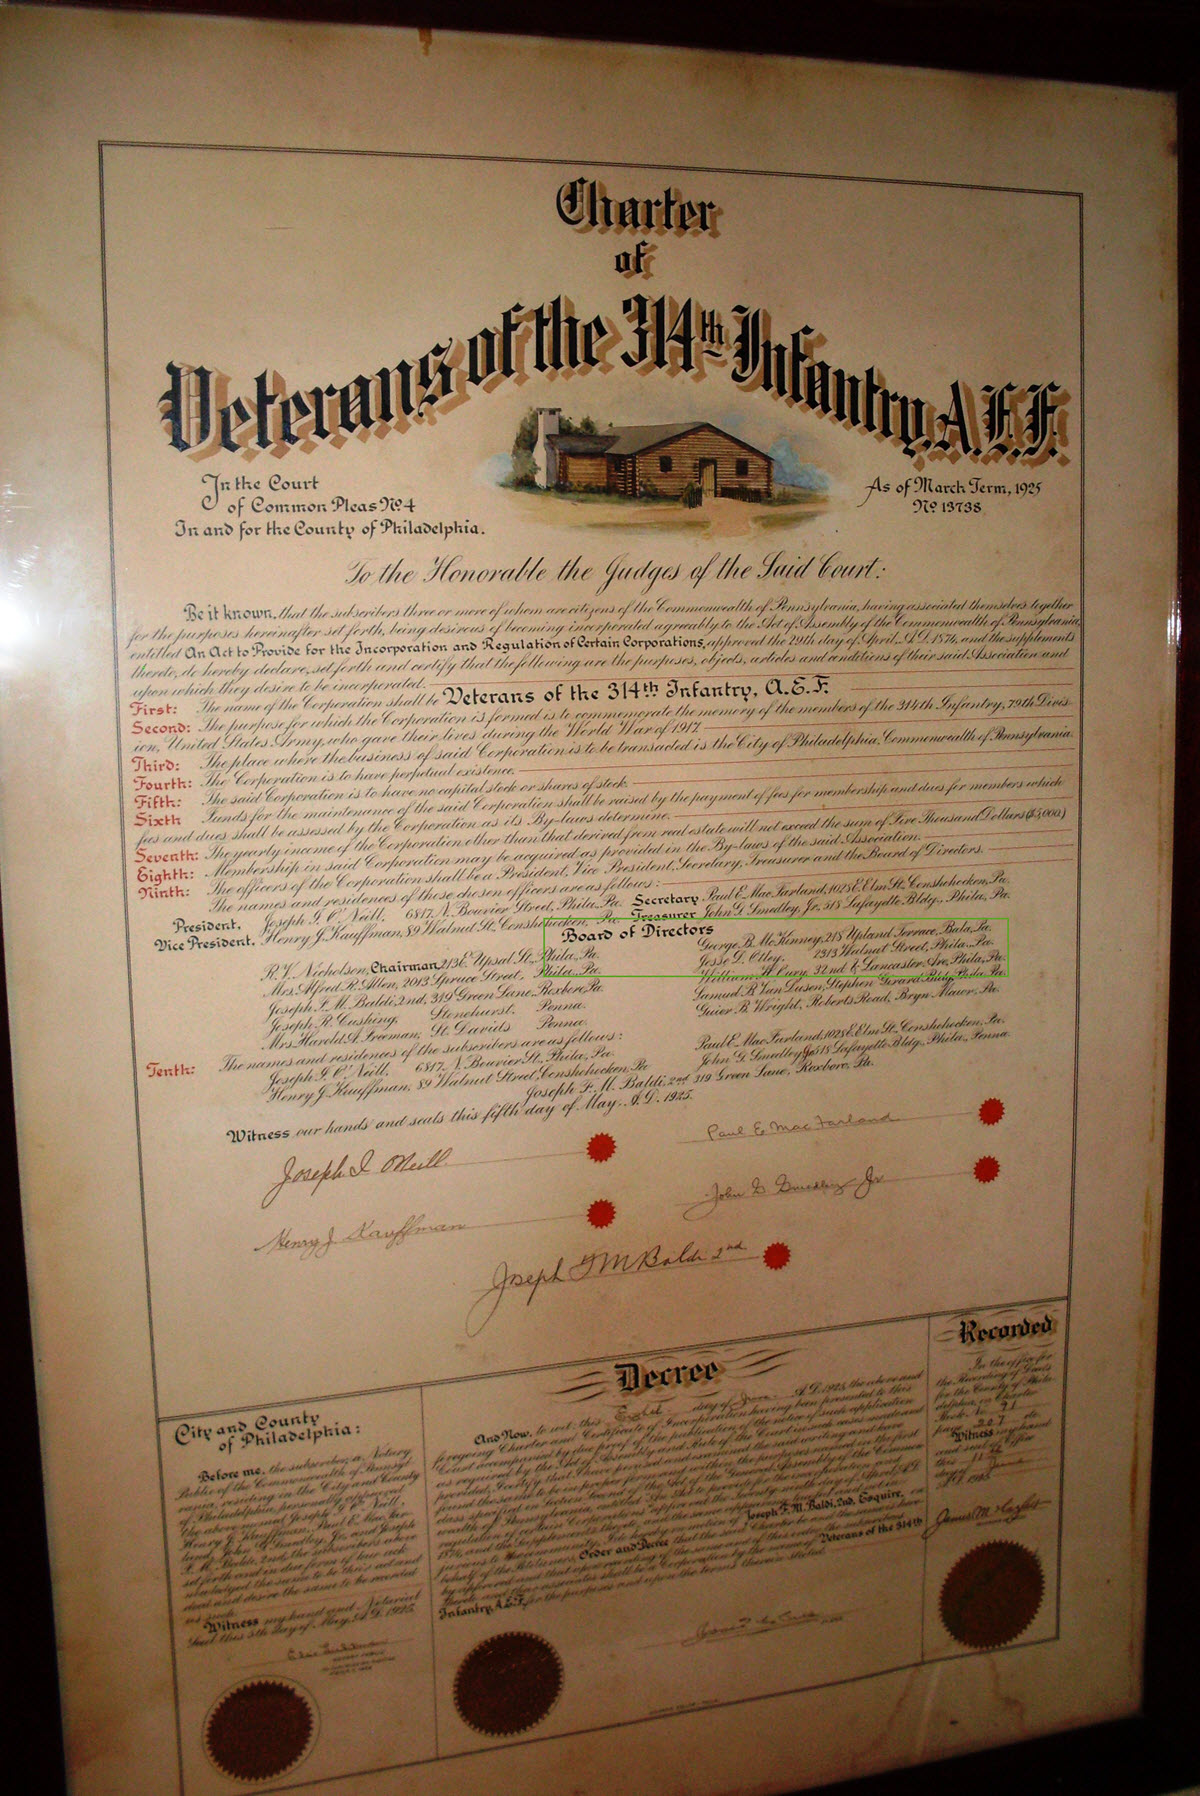 Jesse Otley - 314th Infantry - 1925 Charter